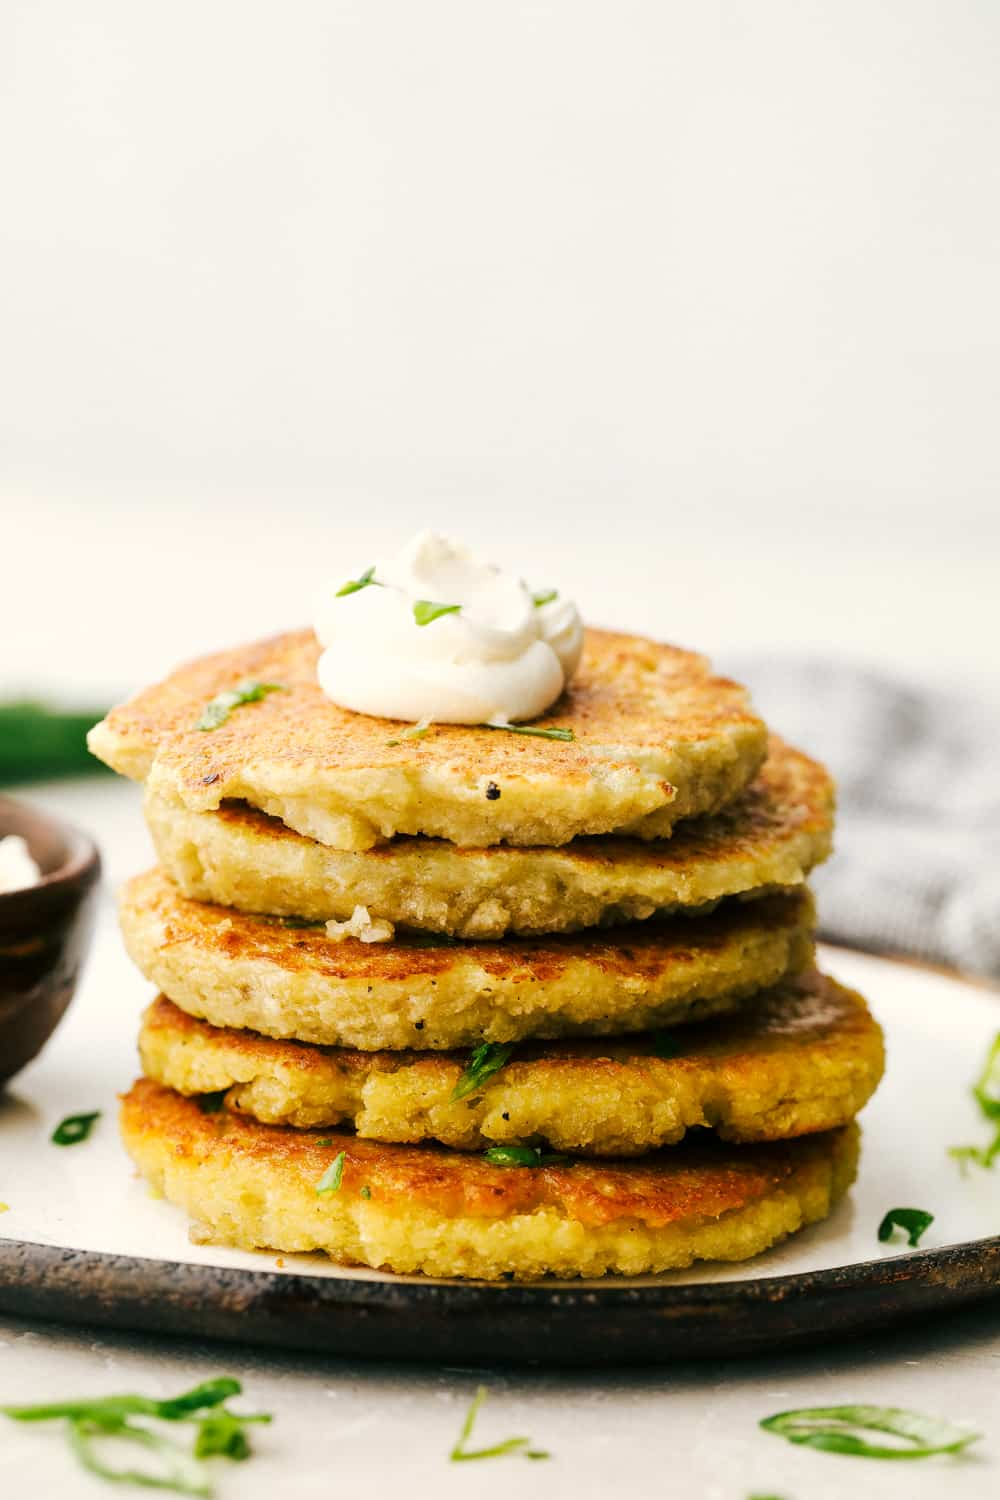 Potato pancakes stacked with a dollop of sour cream.